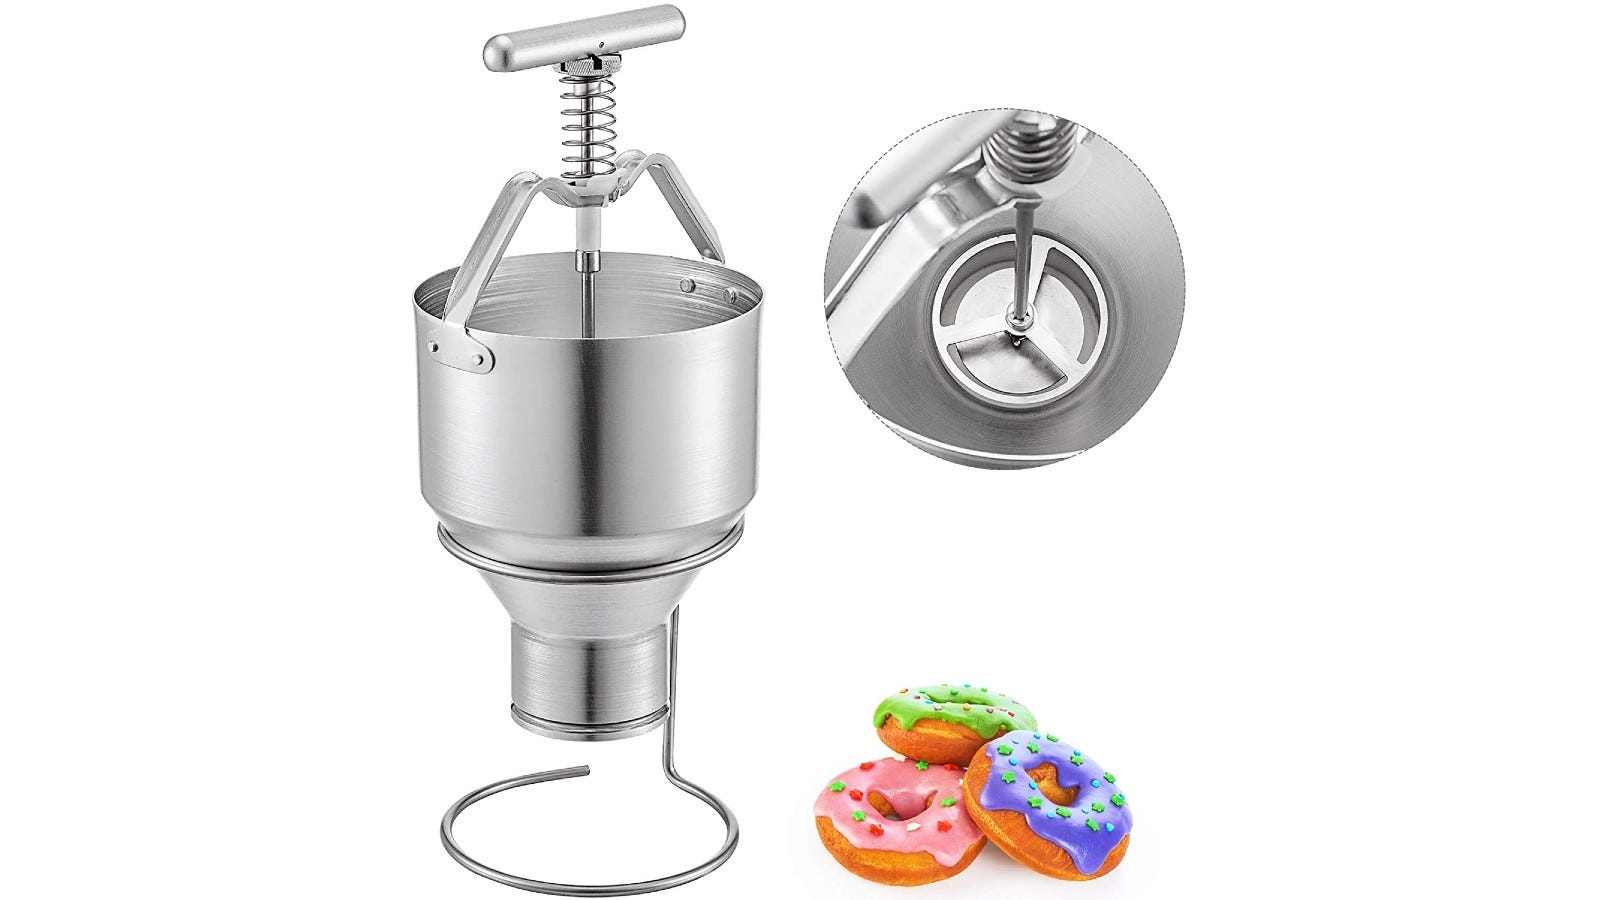 A manual donut dispenser made of aluminum and stainless steel